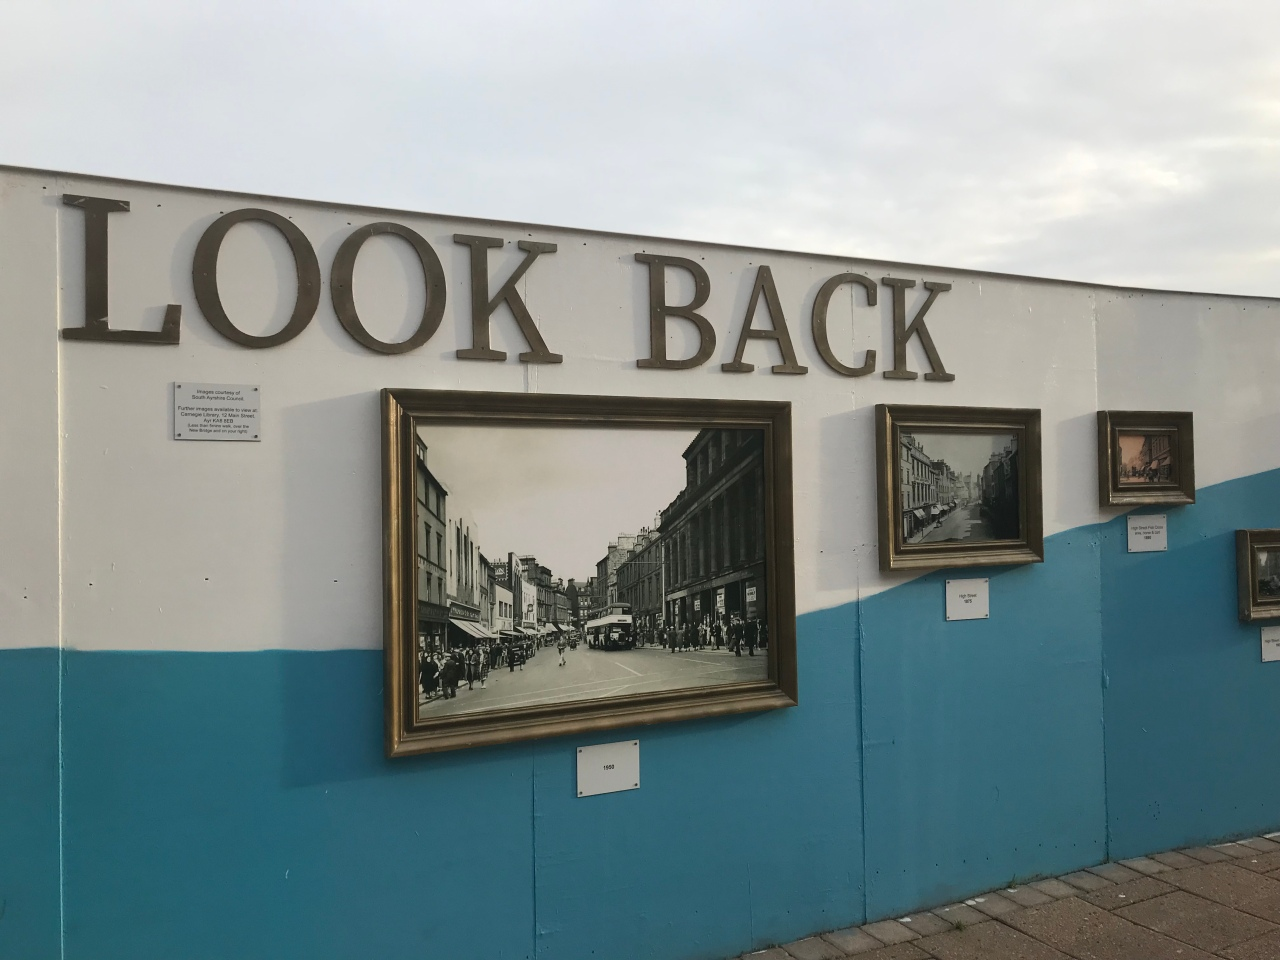 Auld Ayr – what's happening to the High Street? The Ayrshire's Coastal Path a visit to watch Ayr United . Catching up with family. Kilimanjaro update.